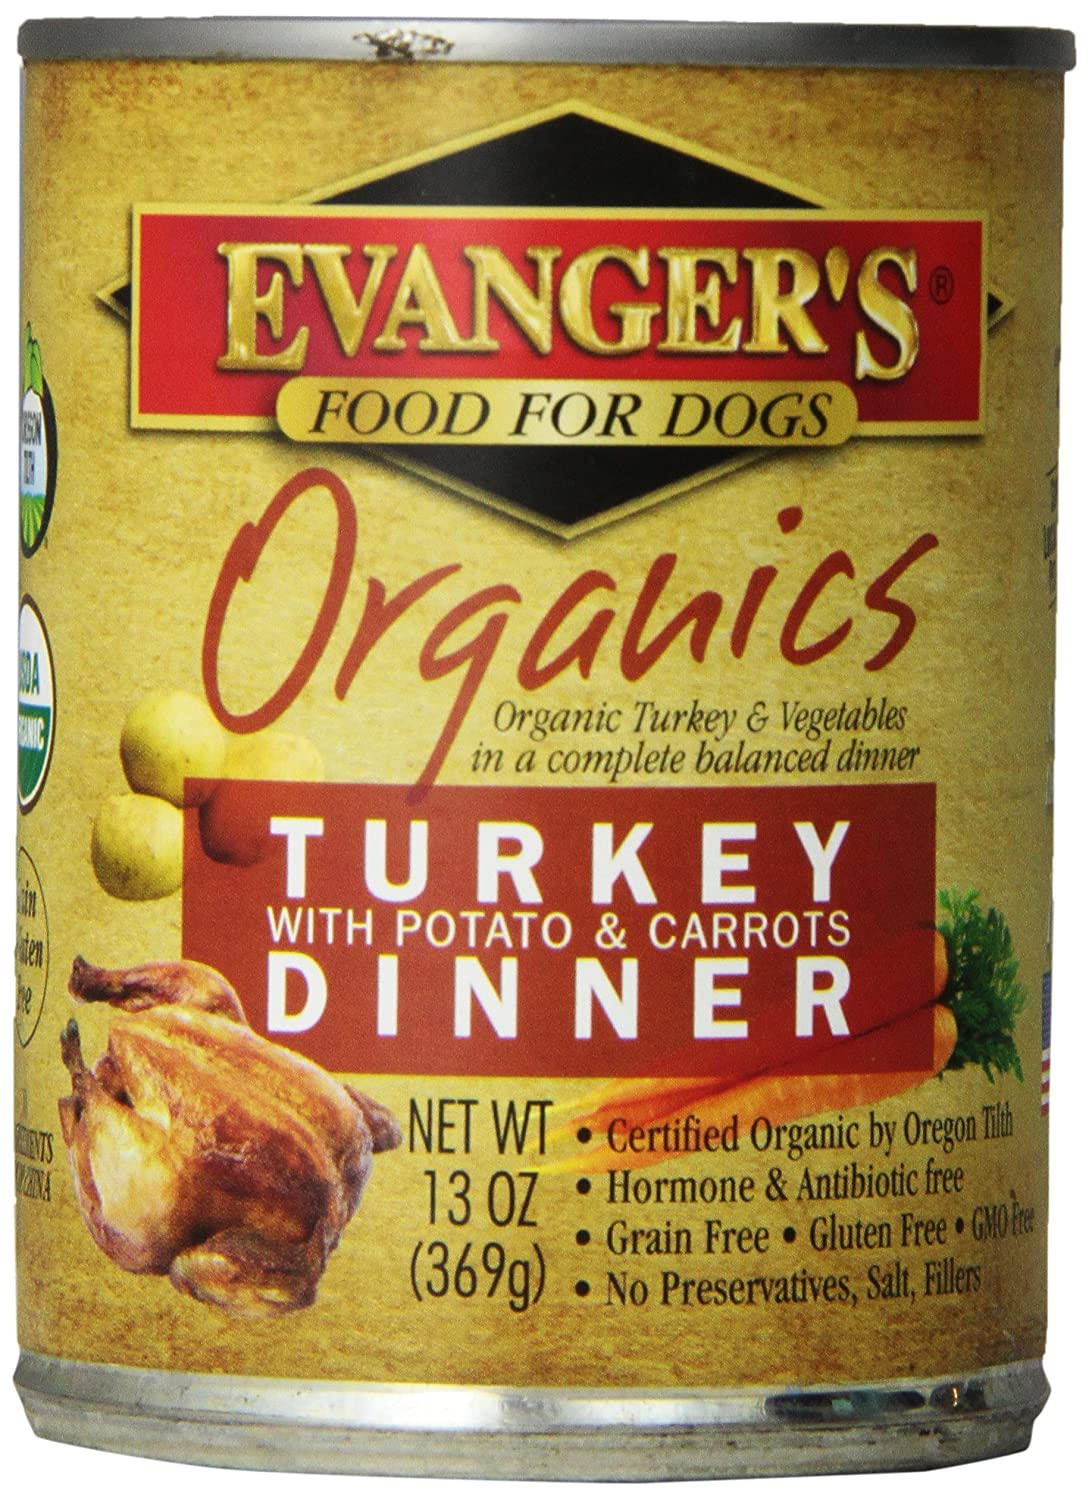 EVANGER'S Organics Turkey with Potato and Carred Dinner for Dogs 12 Pack 13-Ounce Cans